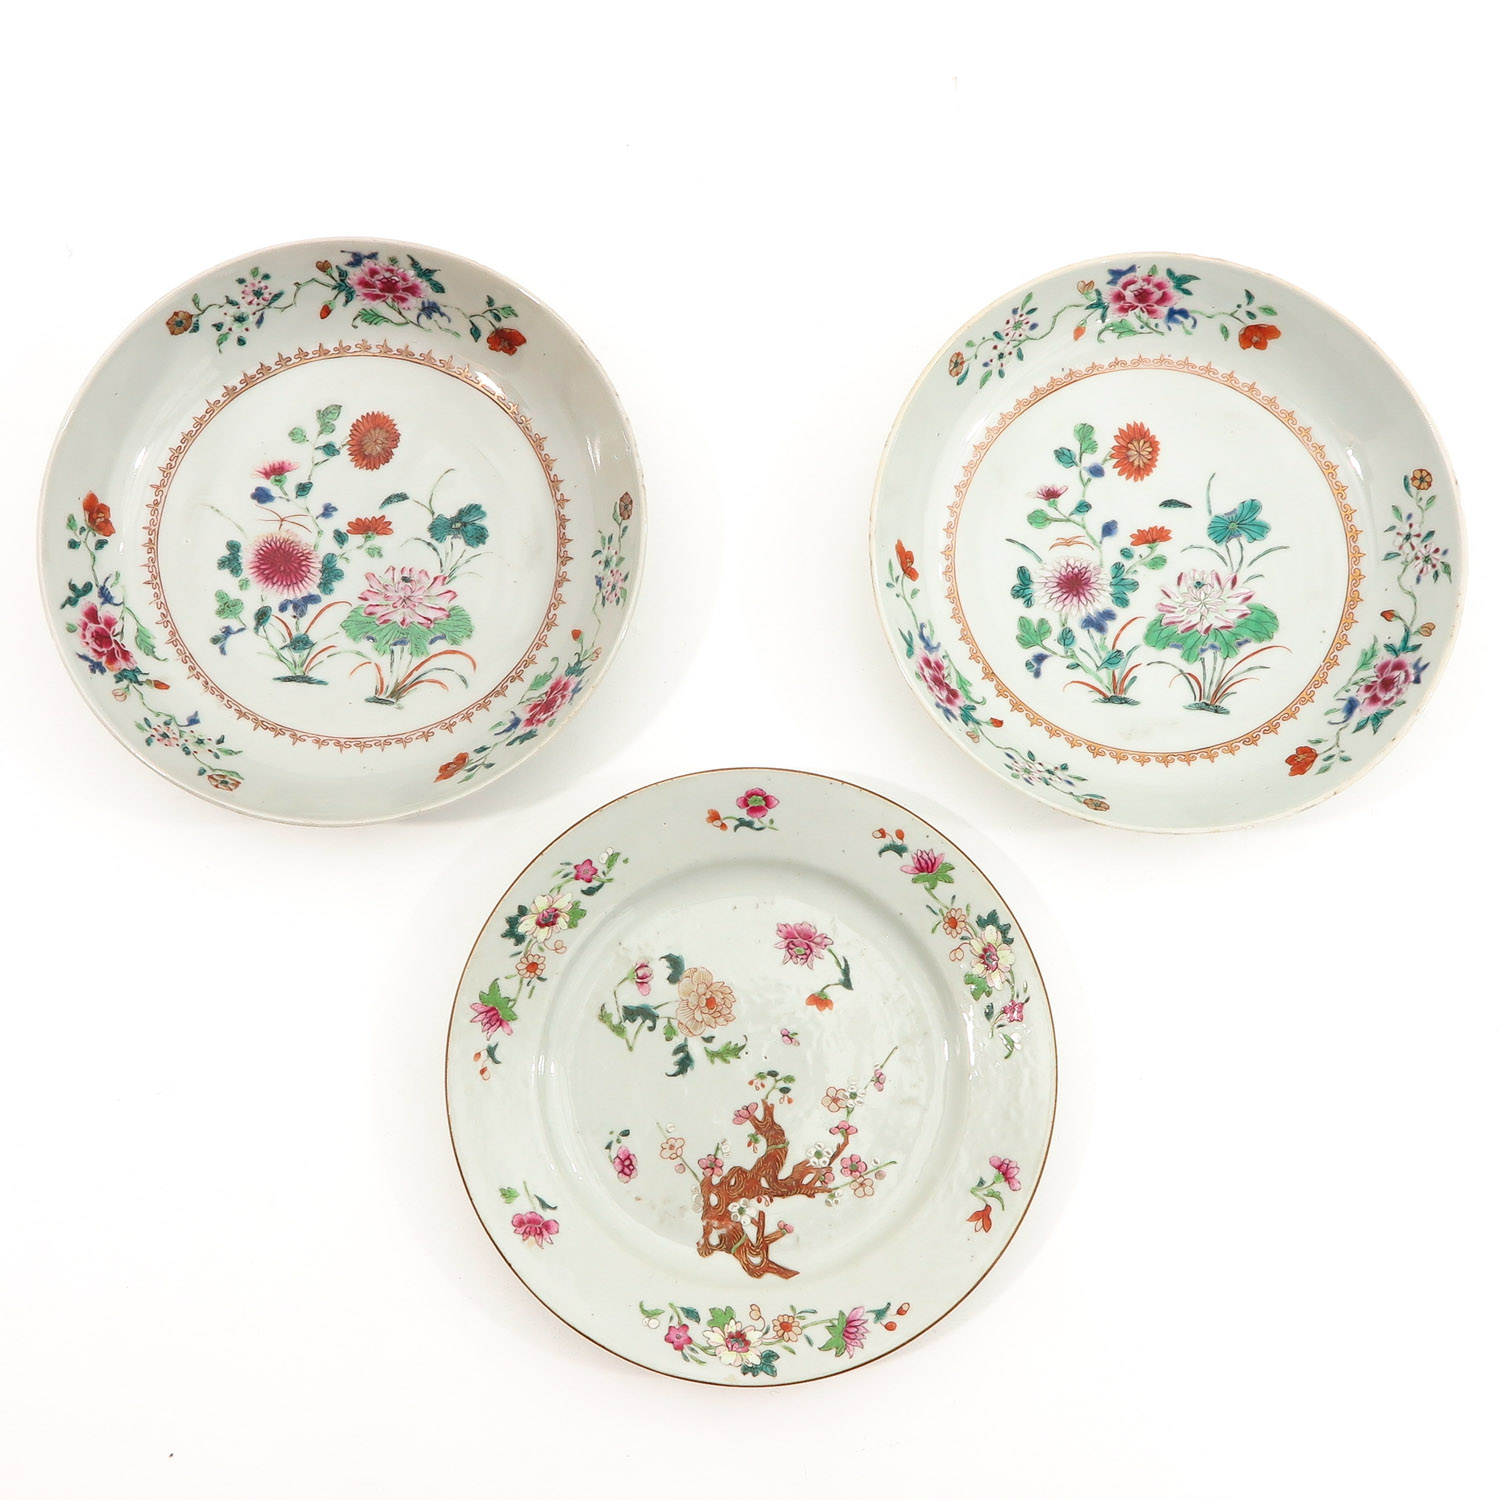 A Collection of 3 Famille Rose Plates